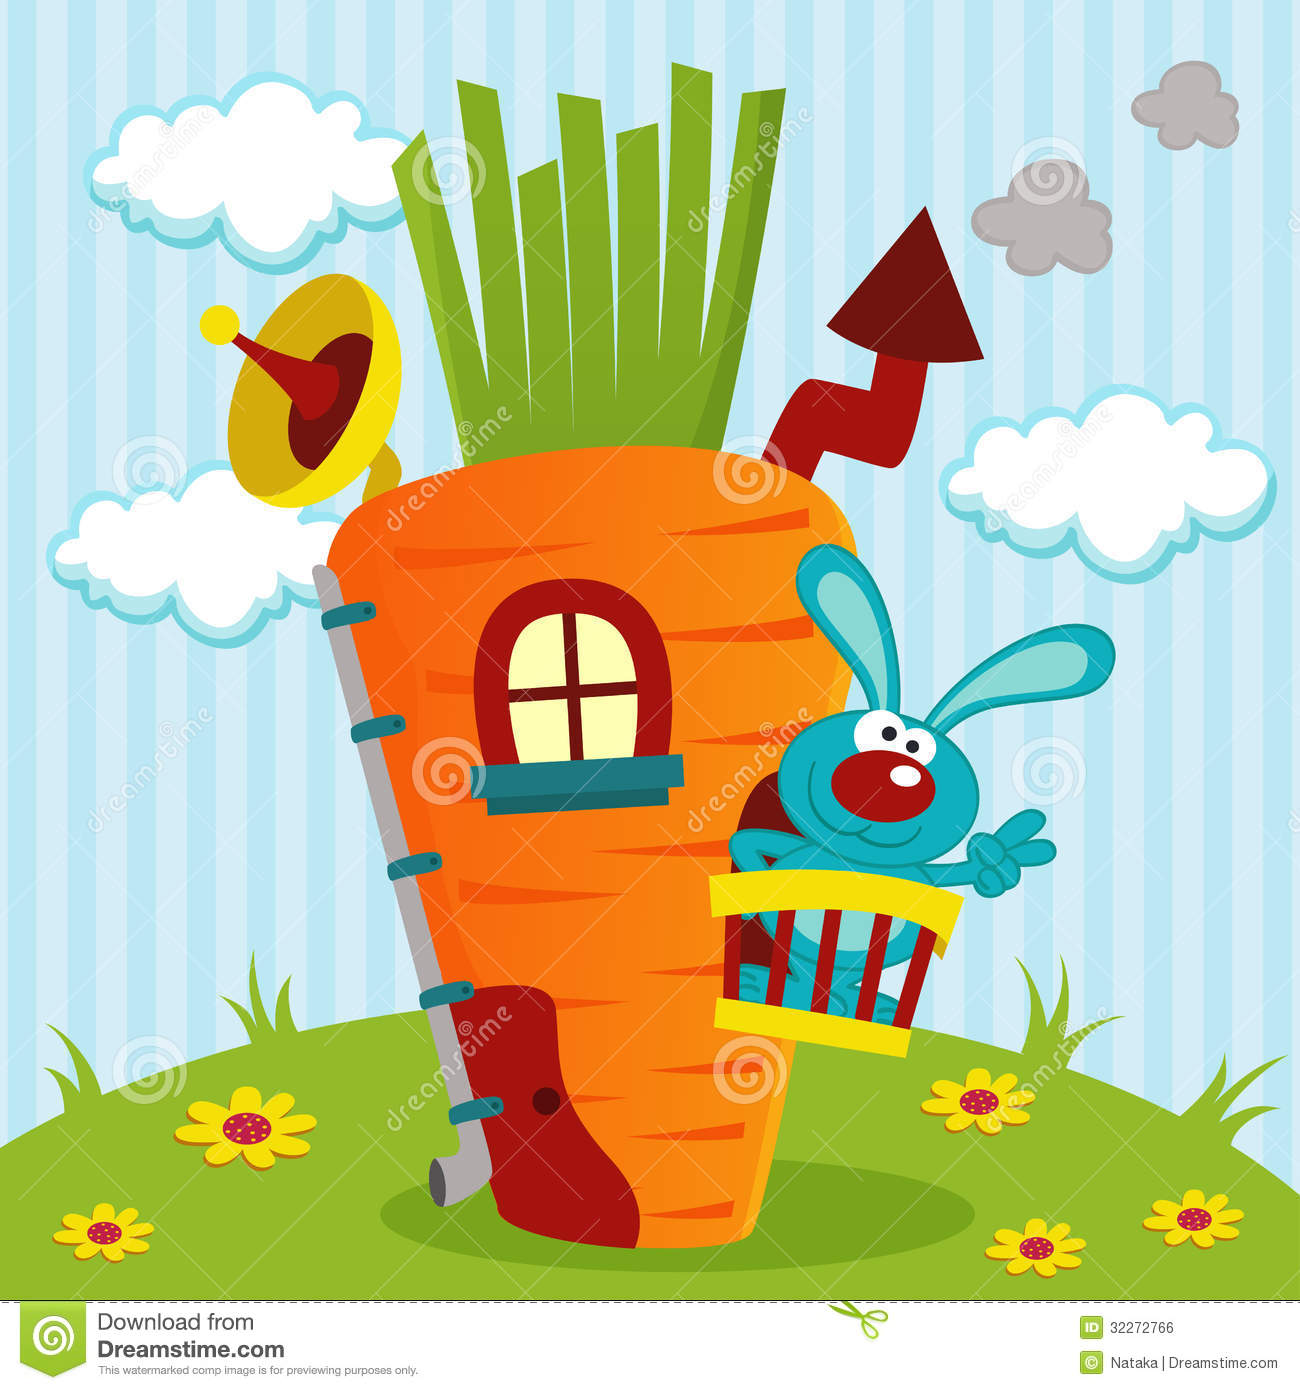 hight resolution of rabbit clipart home in house of carrots graphic royalty free stock